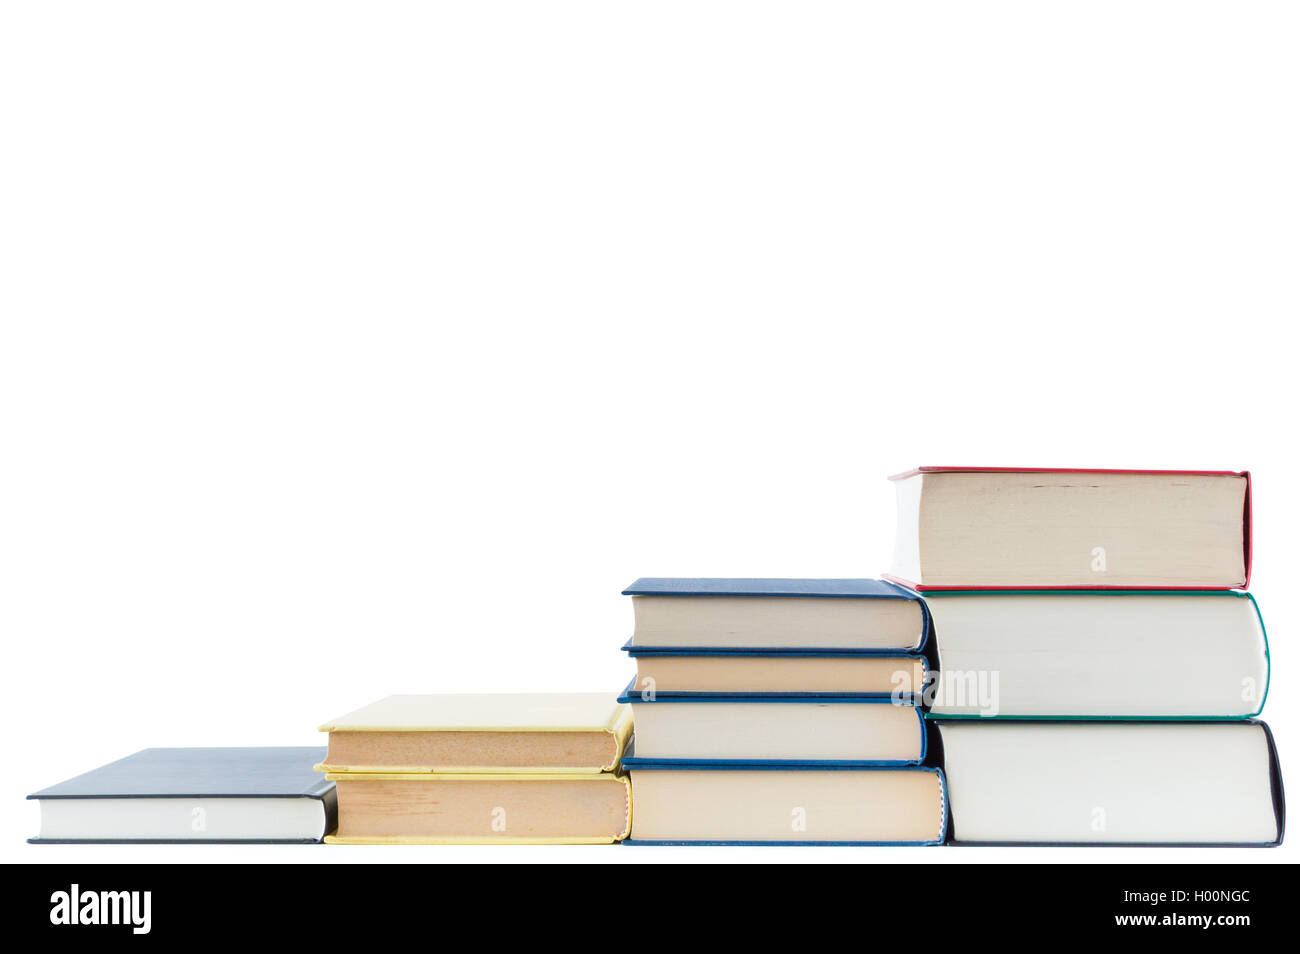 Stairs of books closeup isolated on white - Stock Image